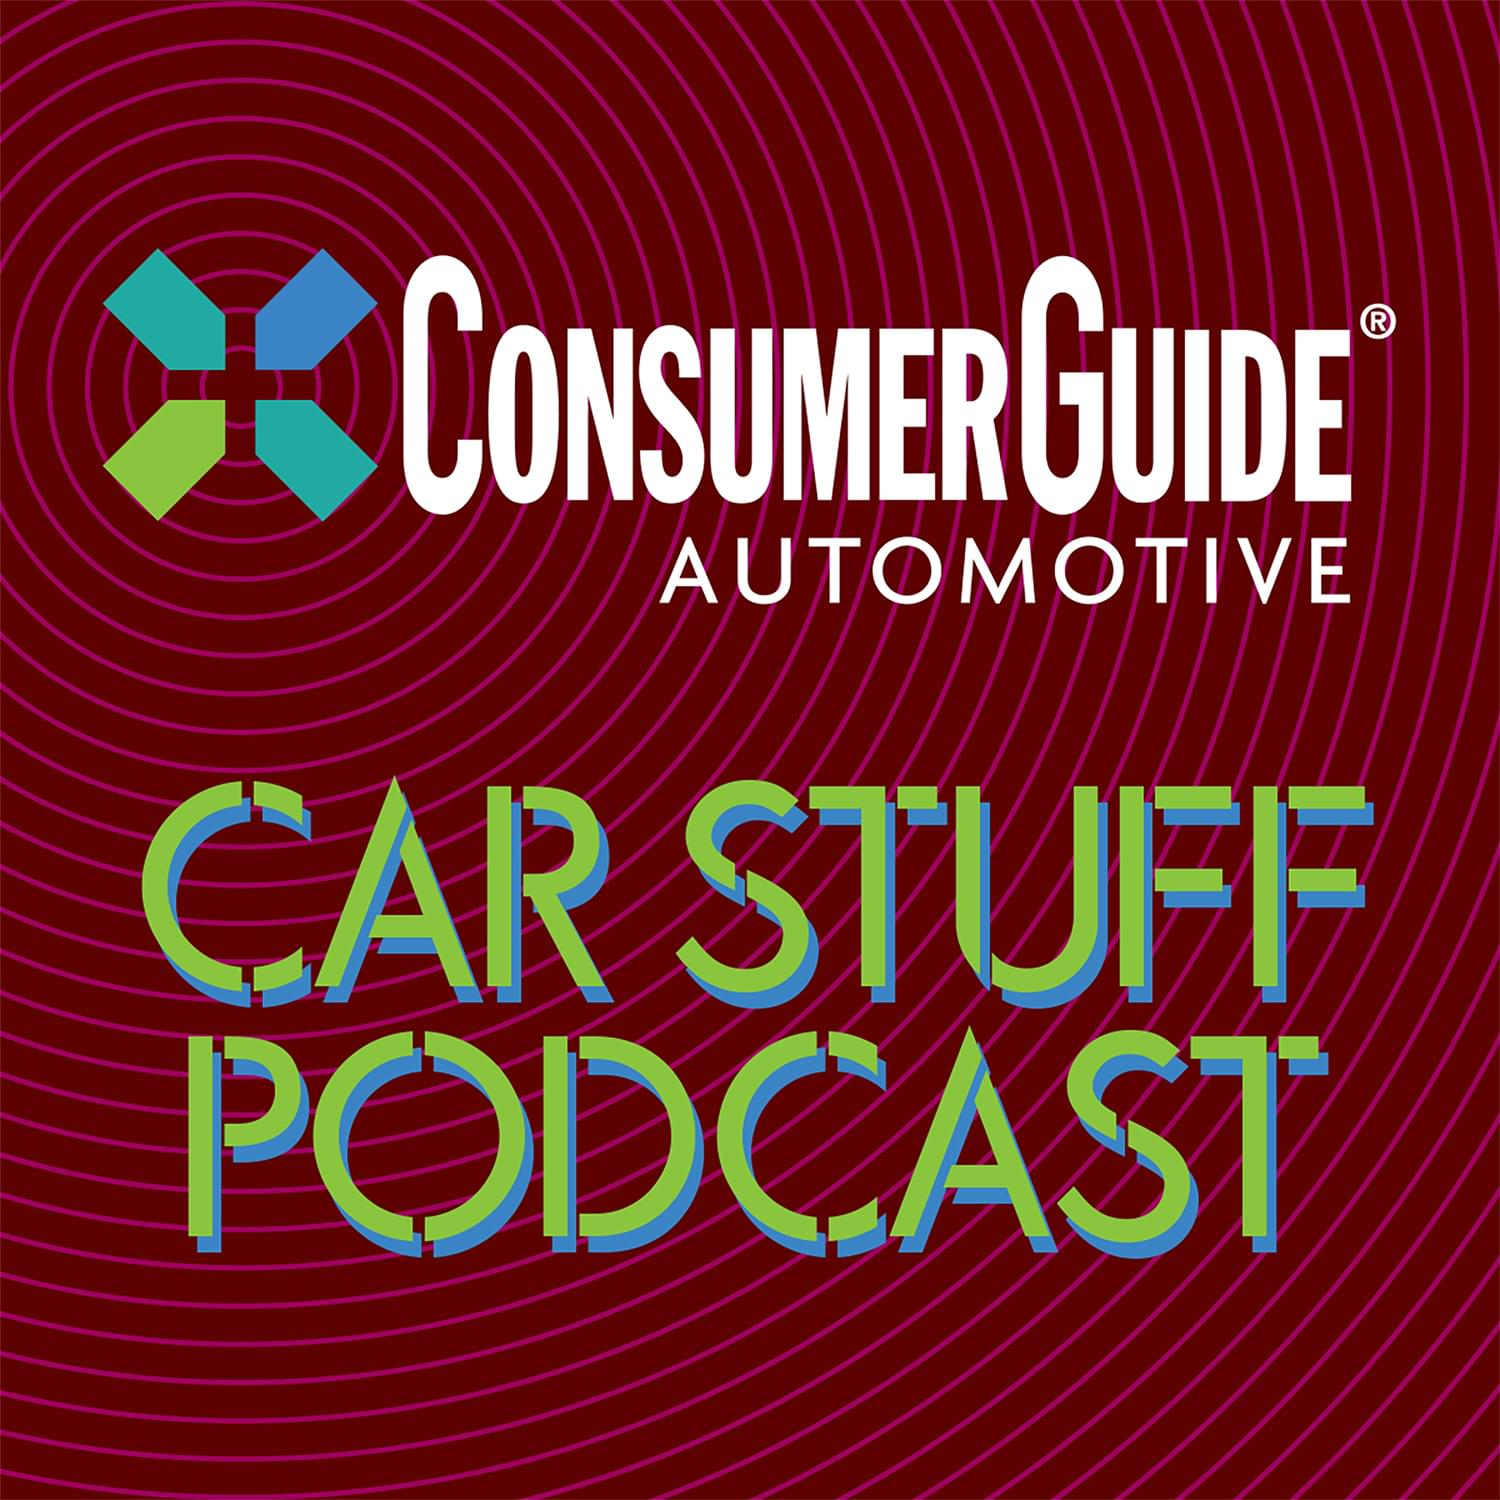 Consumer Guide Automotive